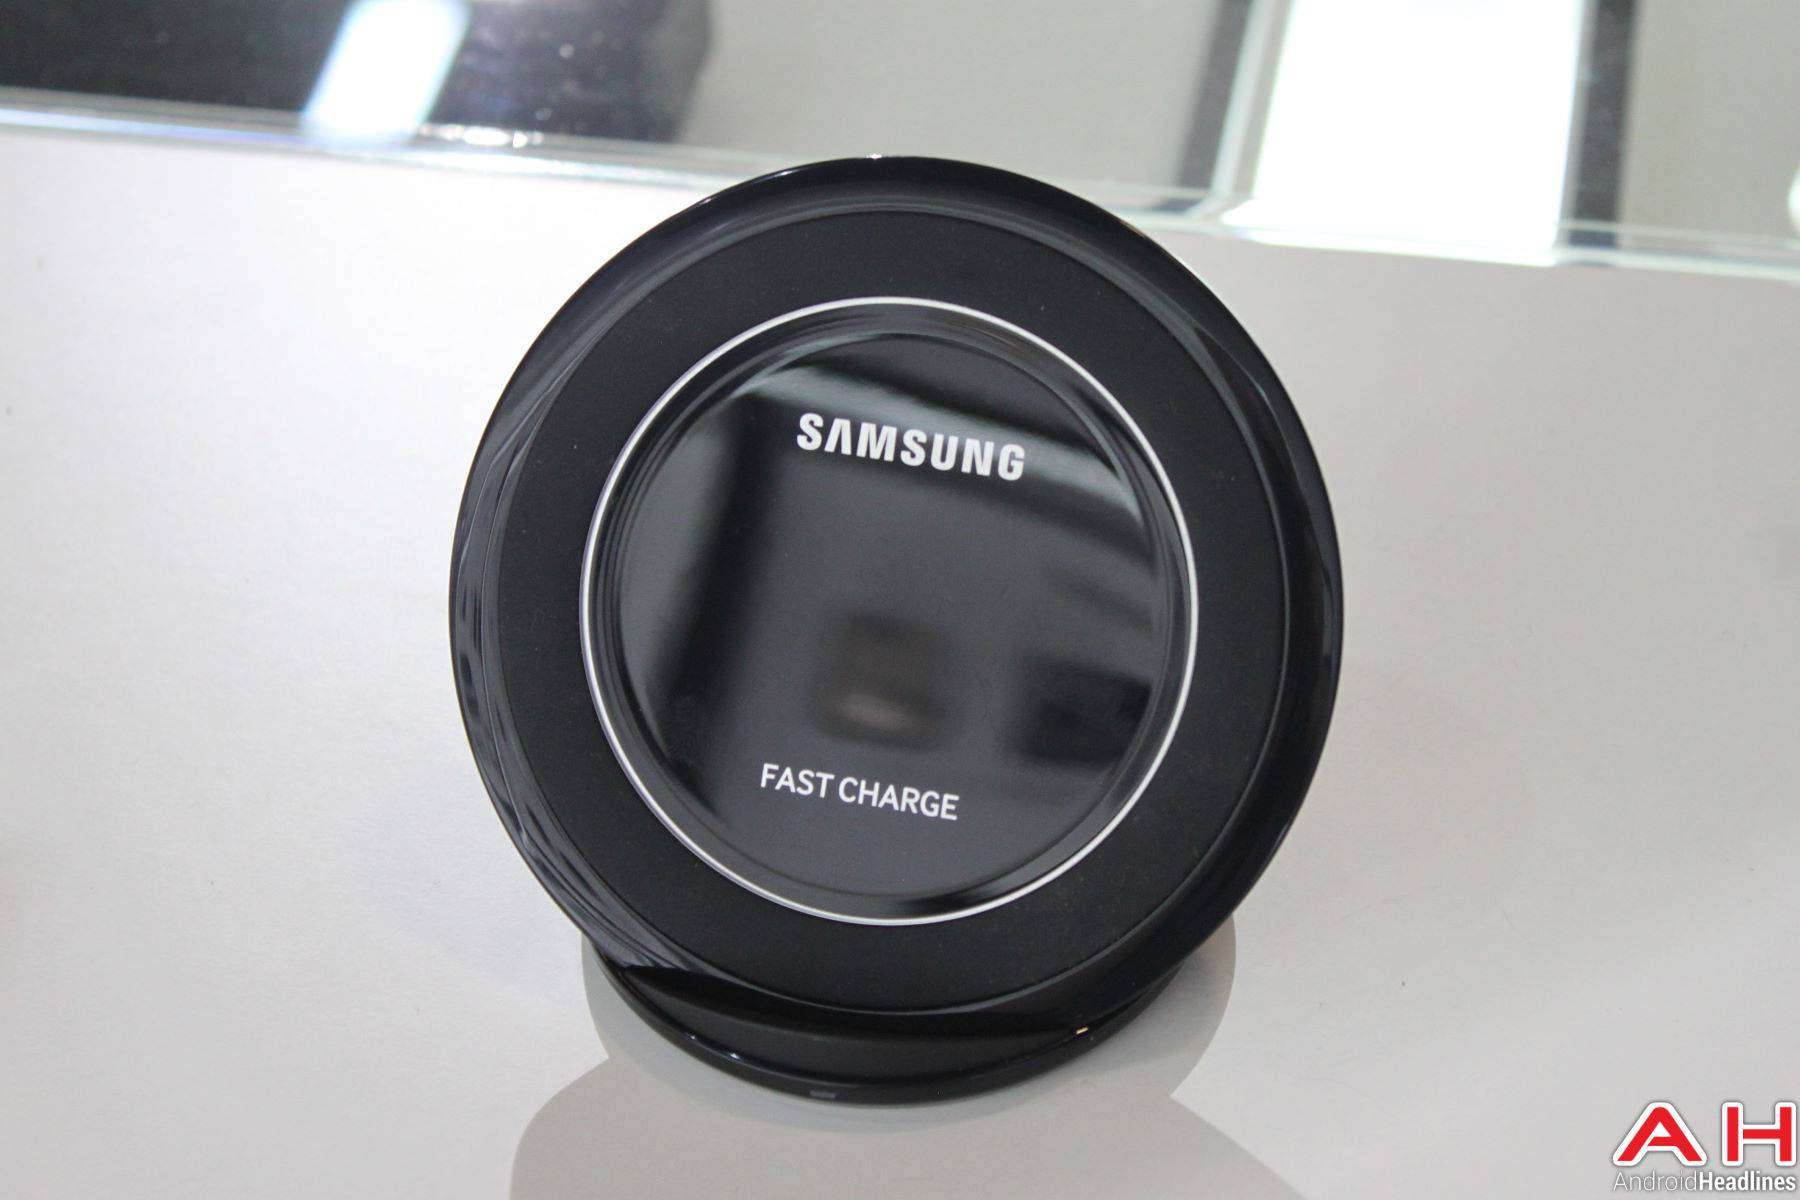 Samsung Galaxy S7 Edge Wireless Charger AH 2